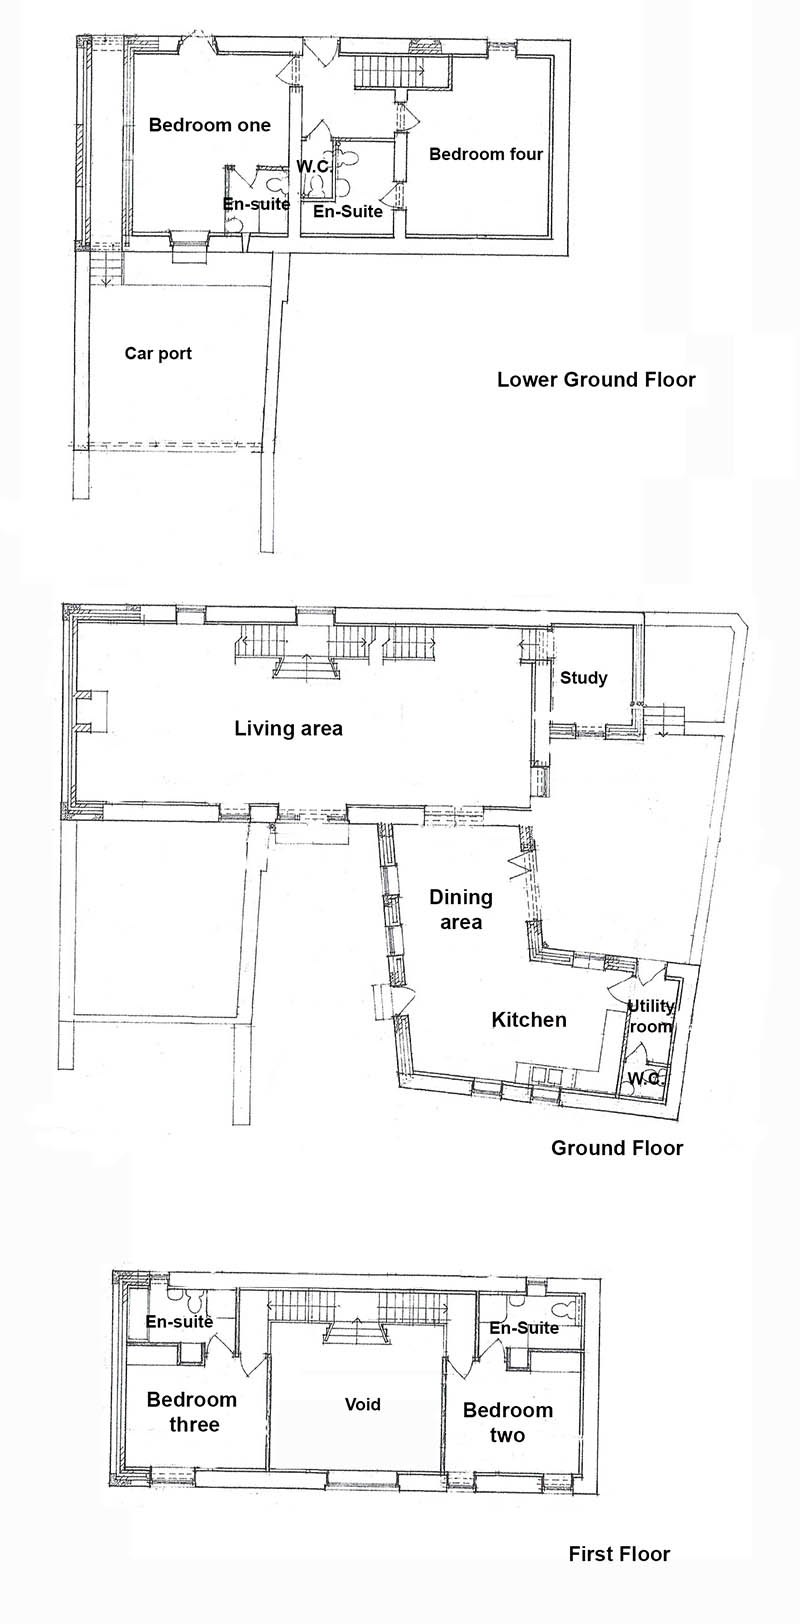 Floorplan of Unconverted barn for sale near Cockermouth, Cumbria